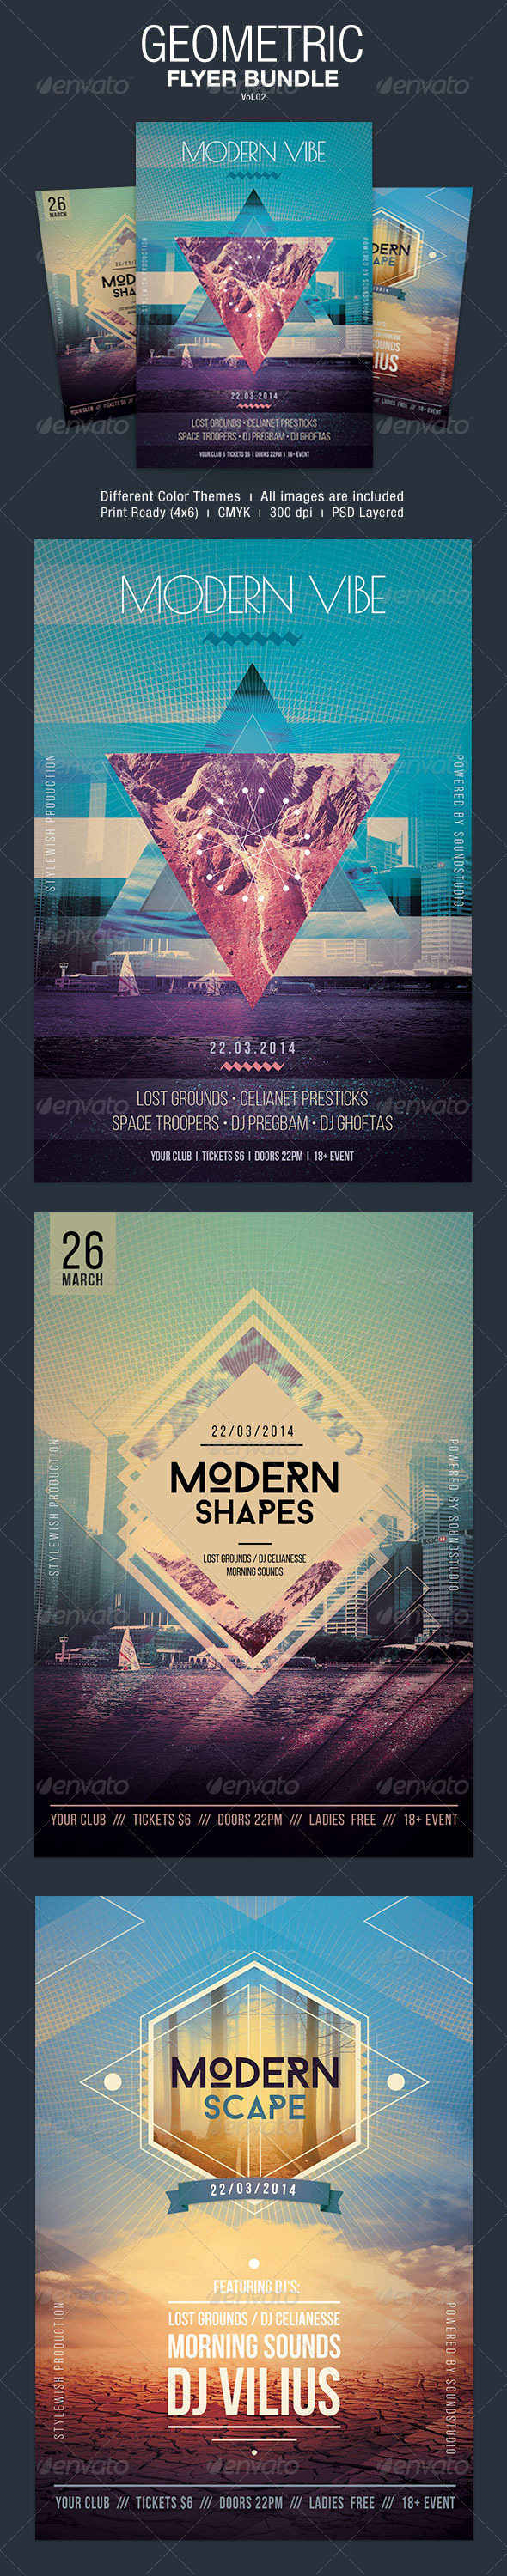 GraphicRiver Geometric Flyer Bundle Vol.02 7181472